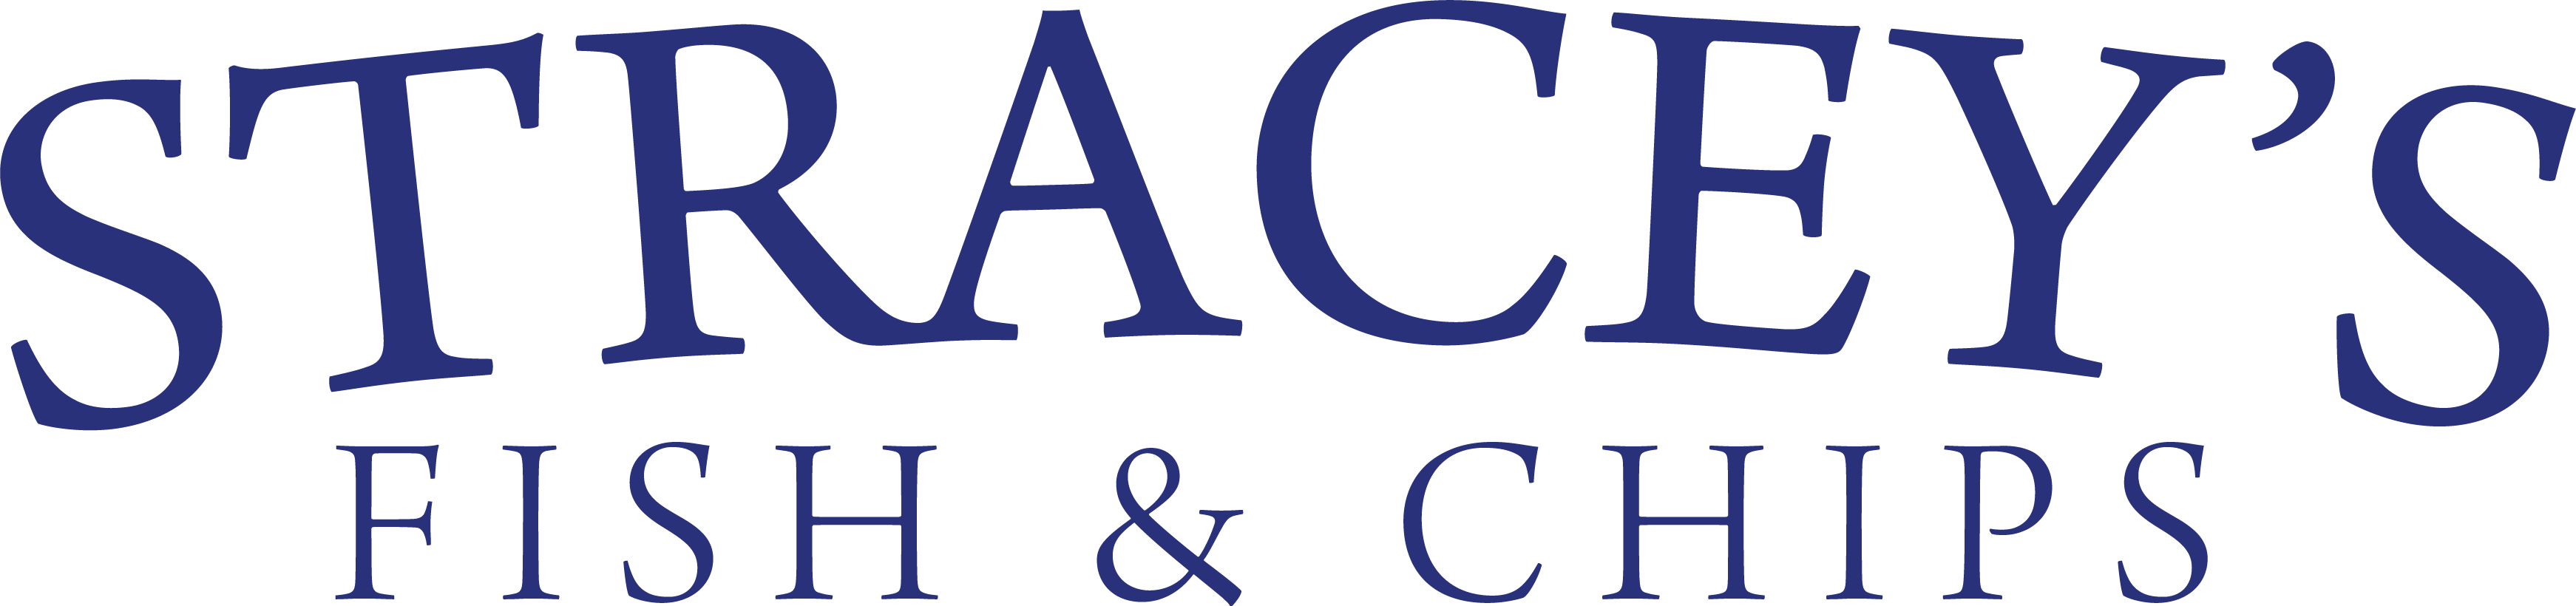 Stracey's_Logo_Website